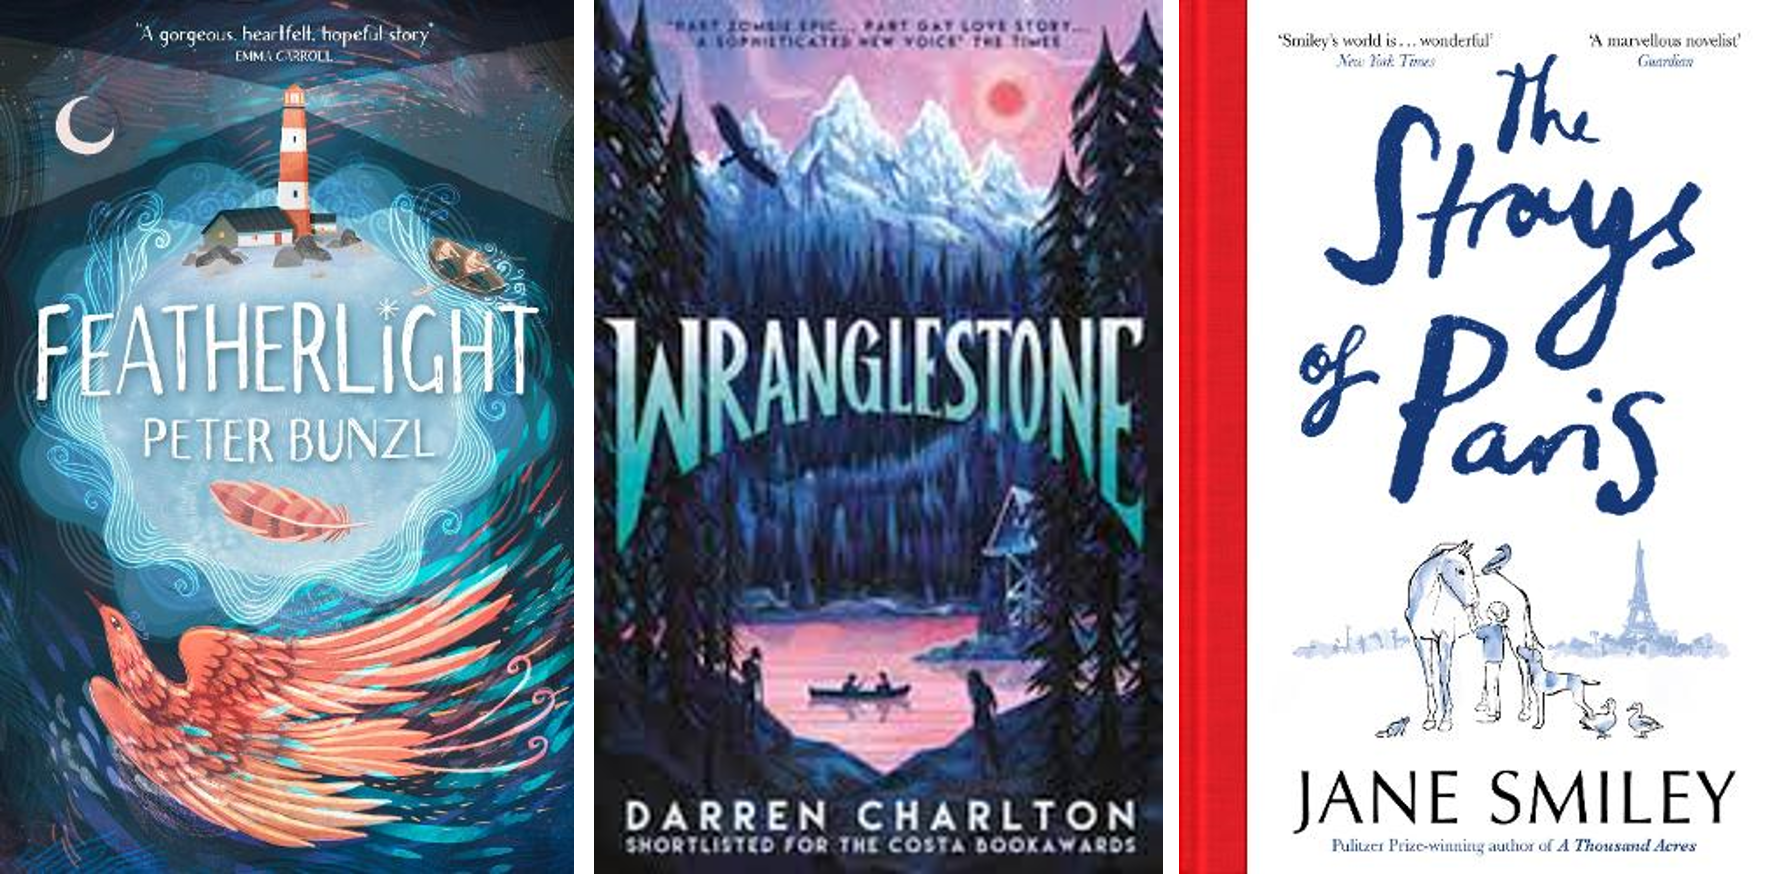 What to read now, ya books